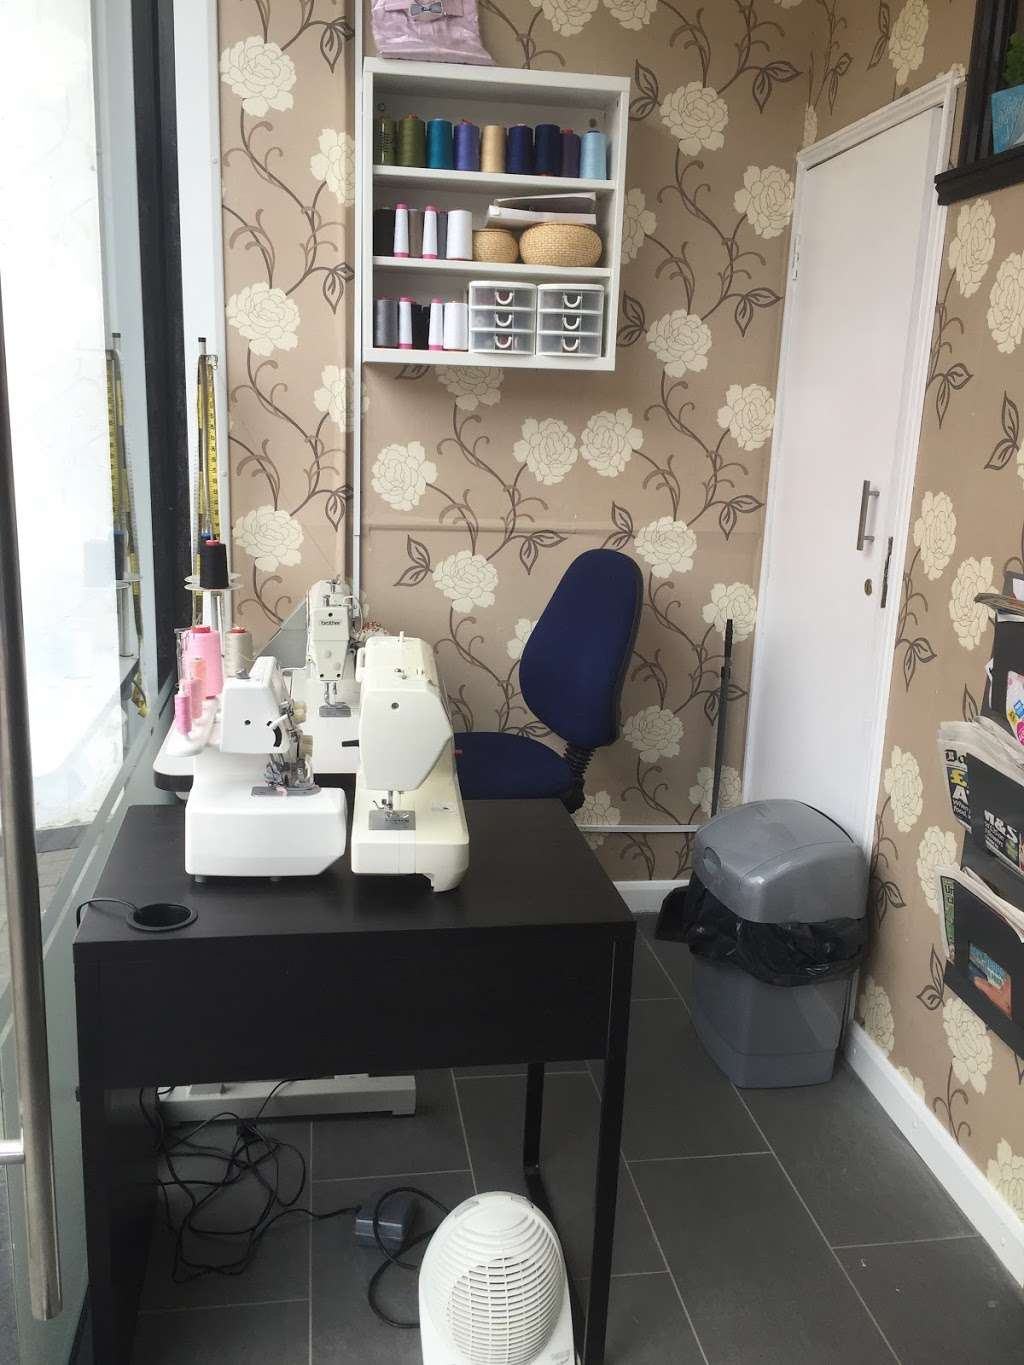 King Dry Cleaning & Laundrette - laundry  | Photo 3 of 10 | Address: 35 Church Rd, London NW4 4EB, UK | Phone: 020 8201 5050